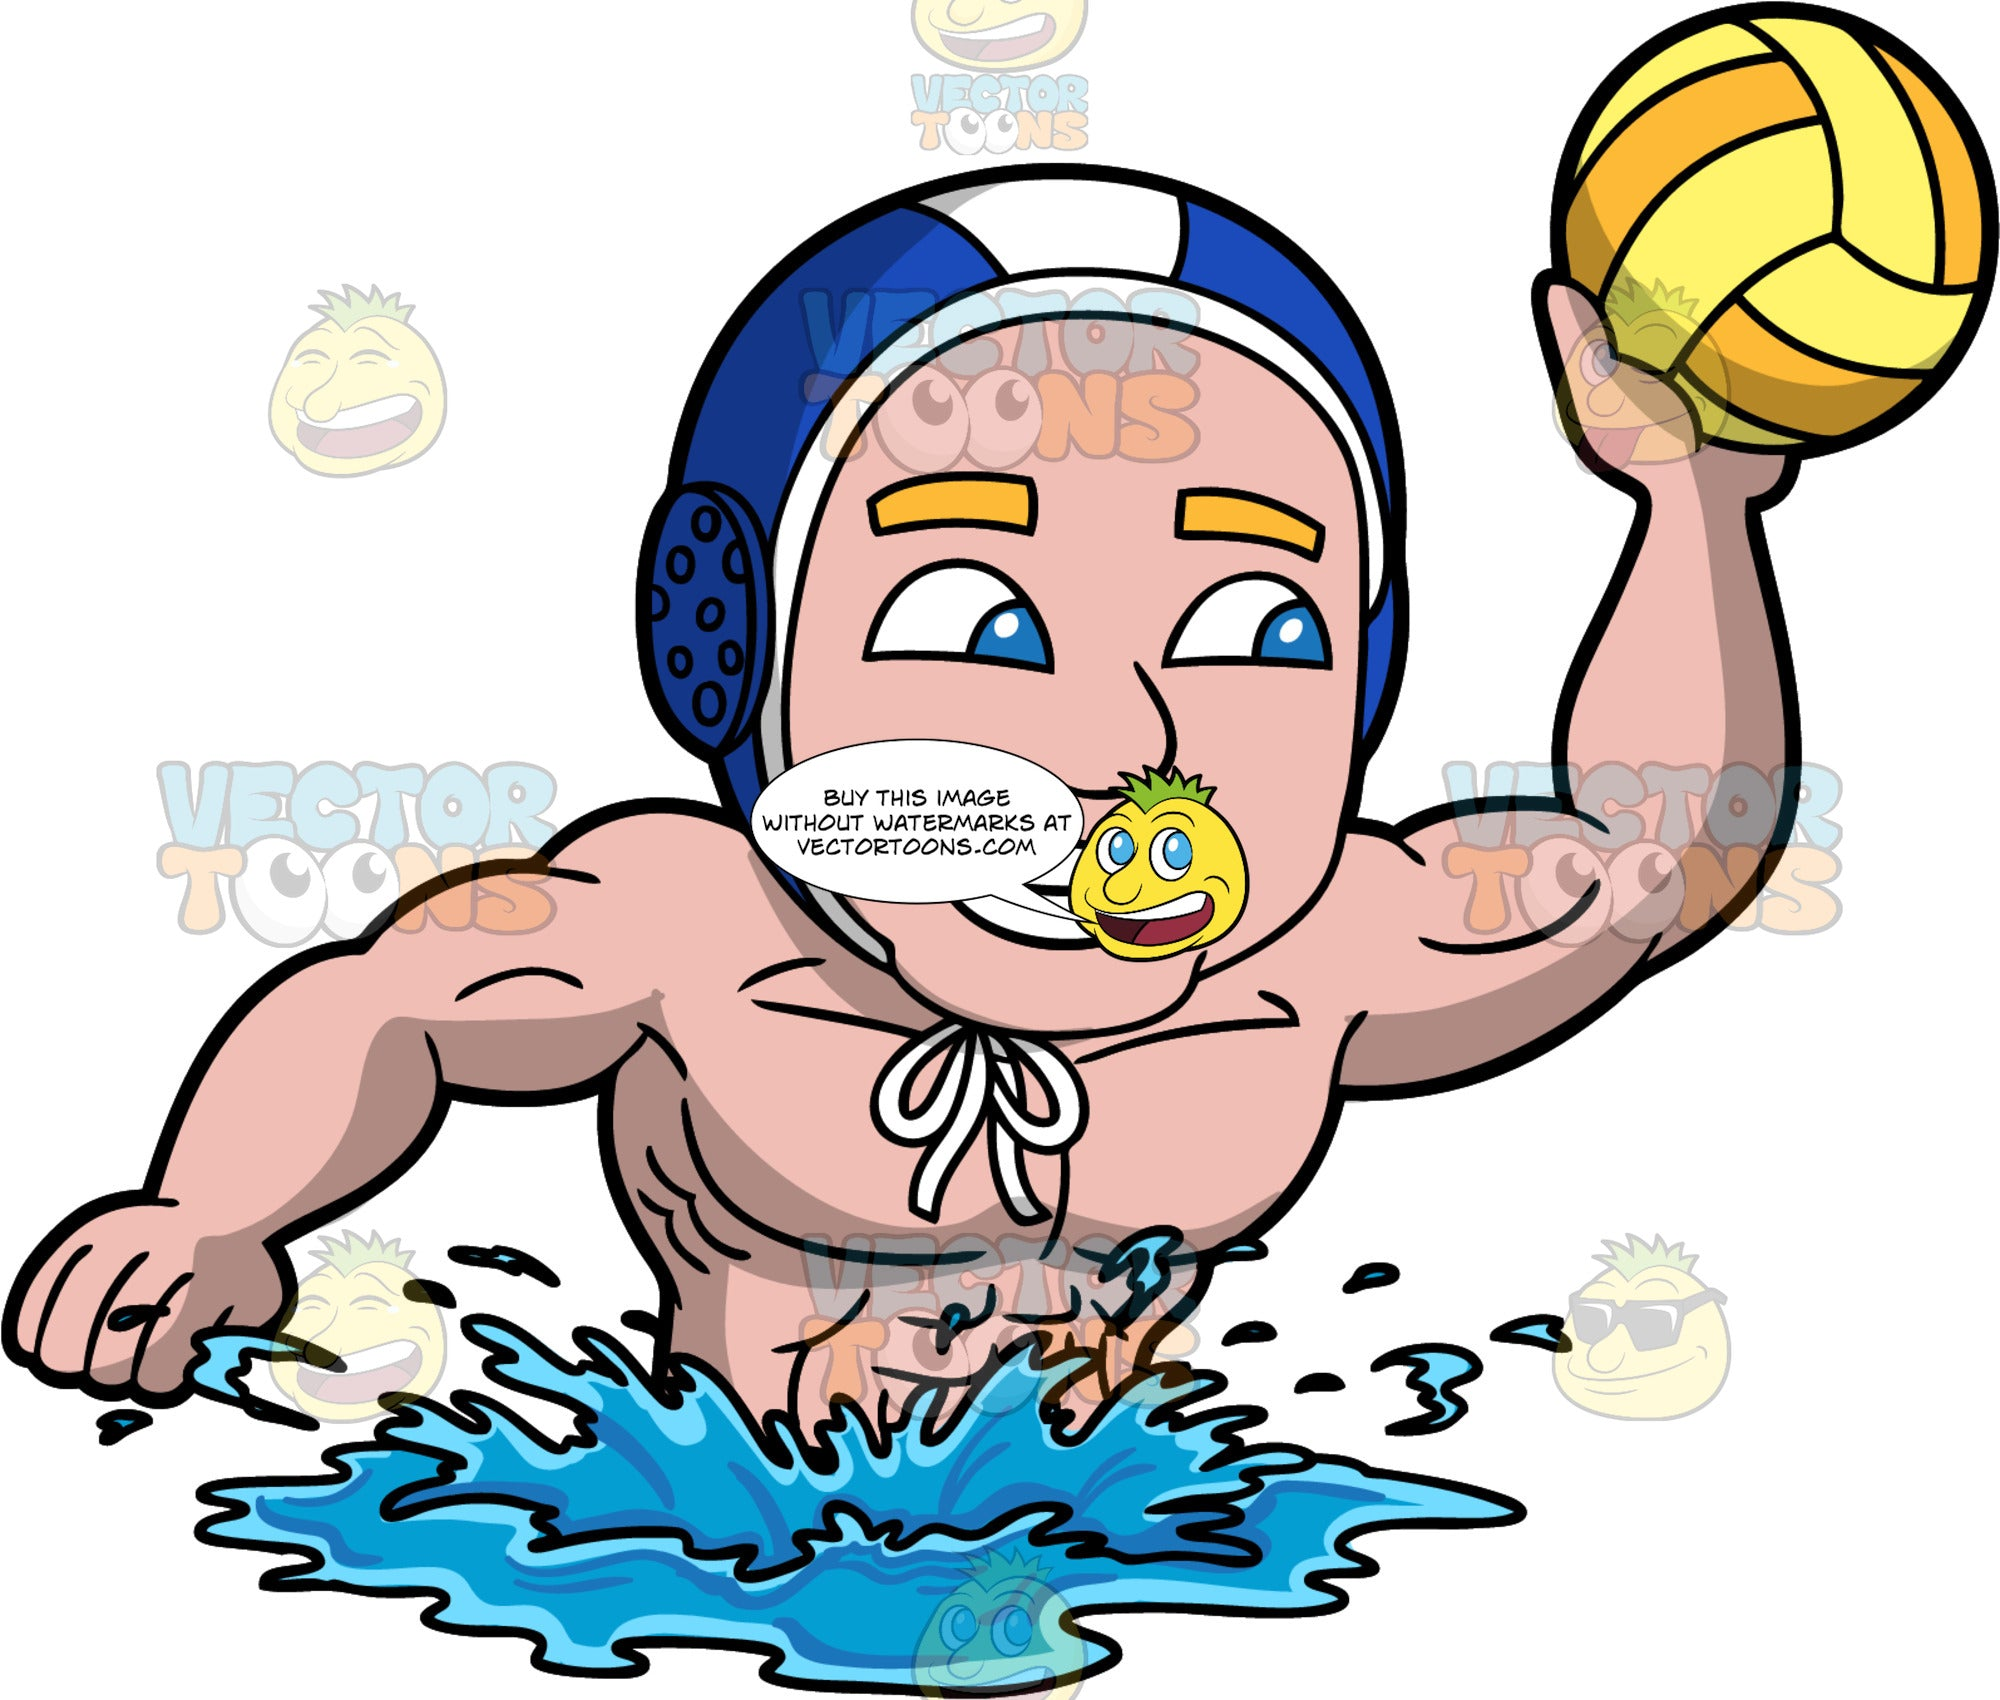 An Excited Man About To Throw A Water Polo Ball. A man with blue eyes, wearing a blue and white water polo cap, smiles as he lifts one arm up and gets ready to throw the orange and yellow water polo ball in his hand